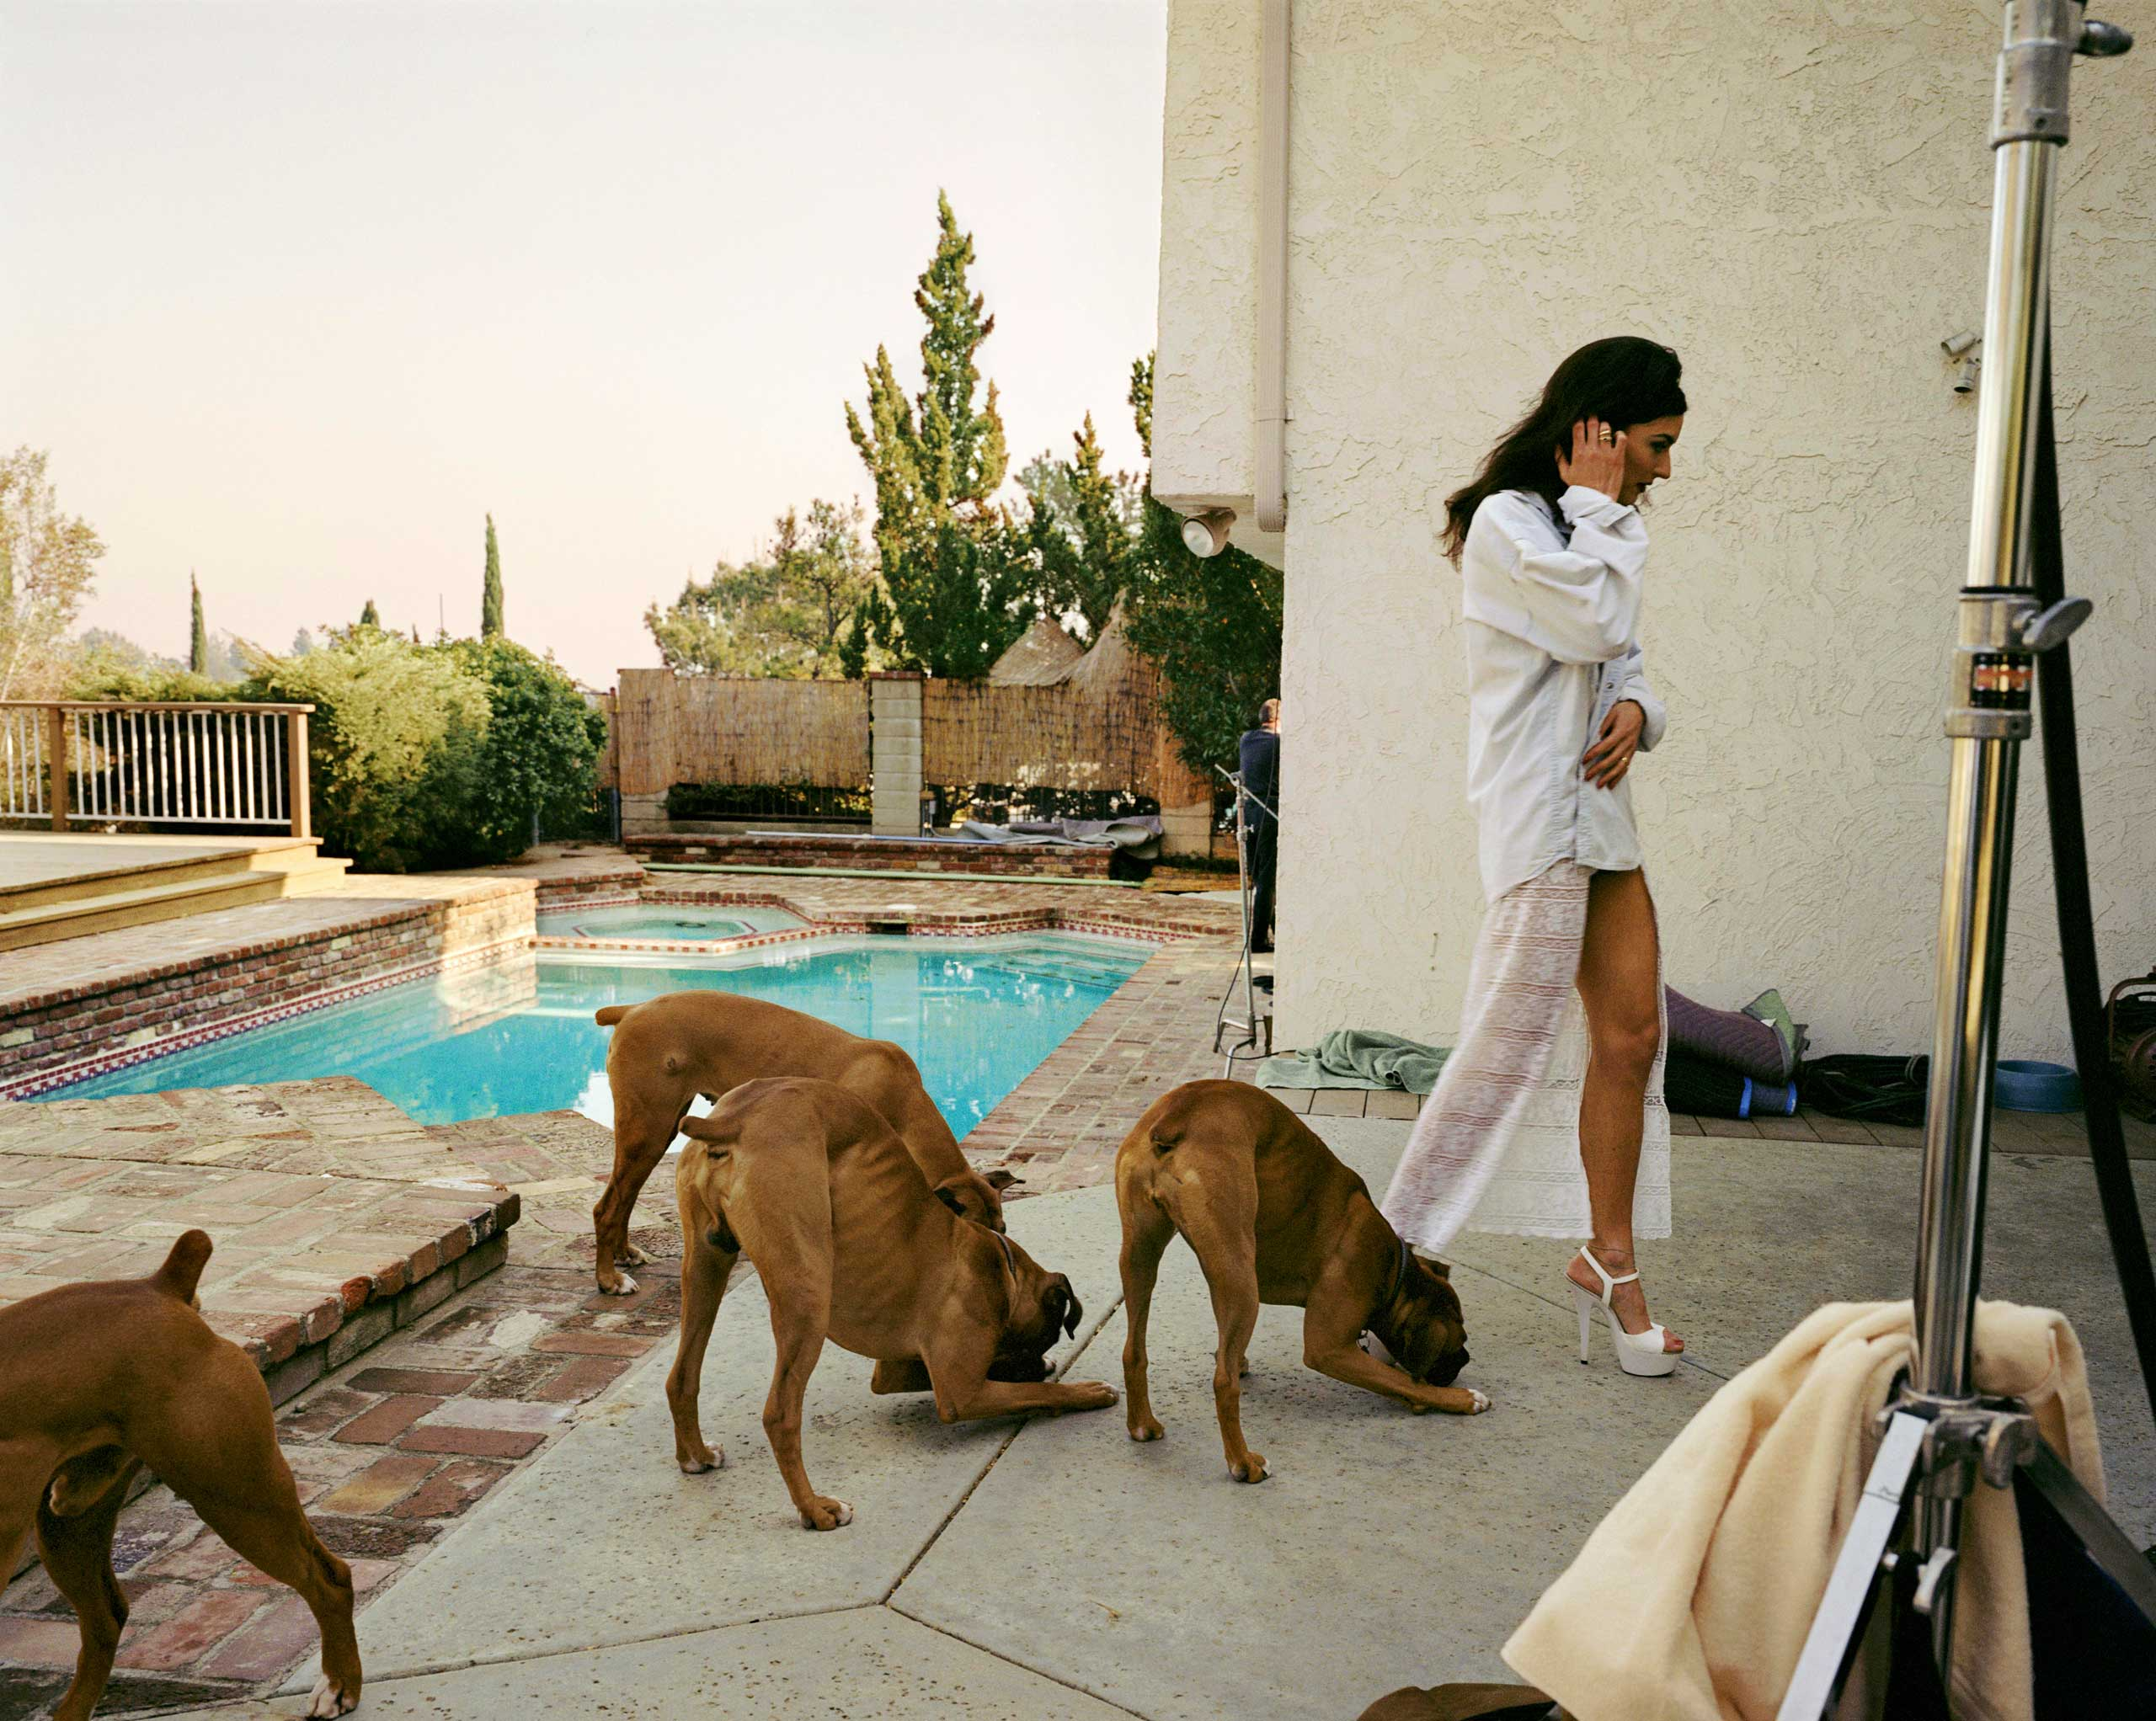 Boxers, Mission Hills, 1999, from the series The Valley